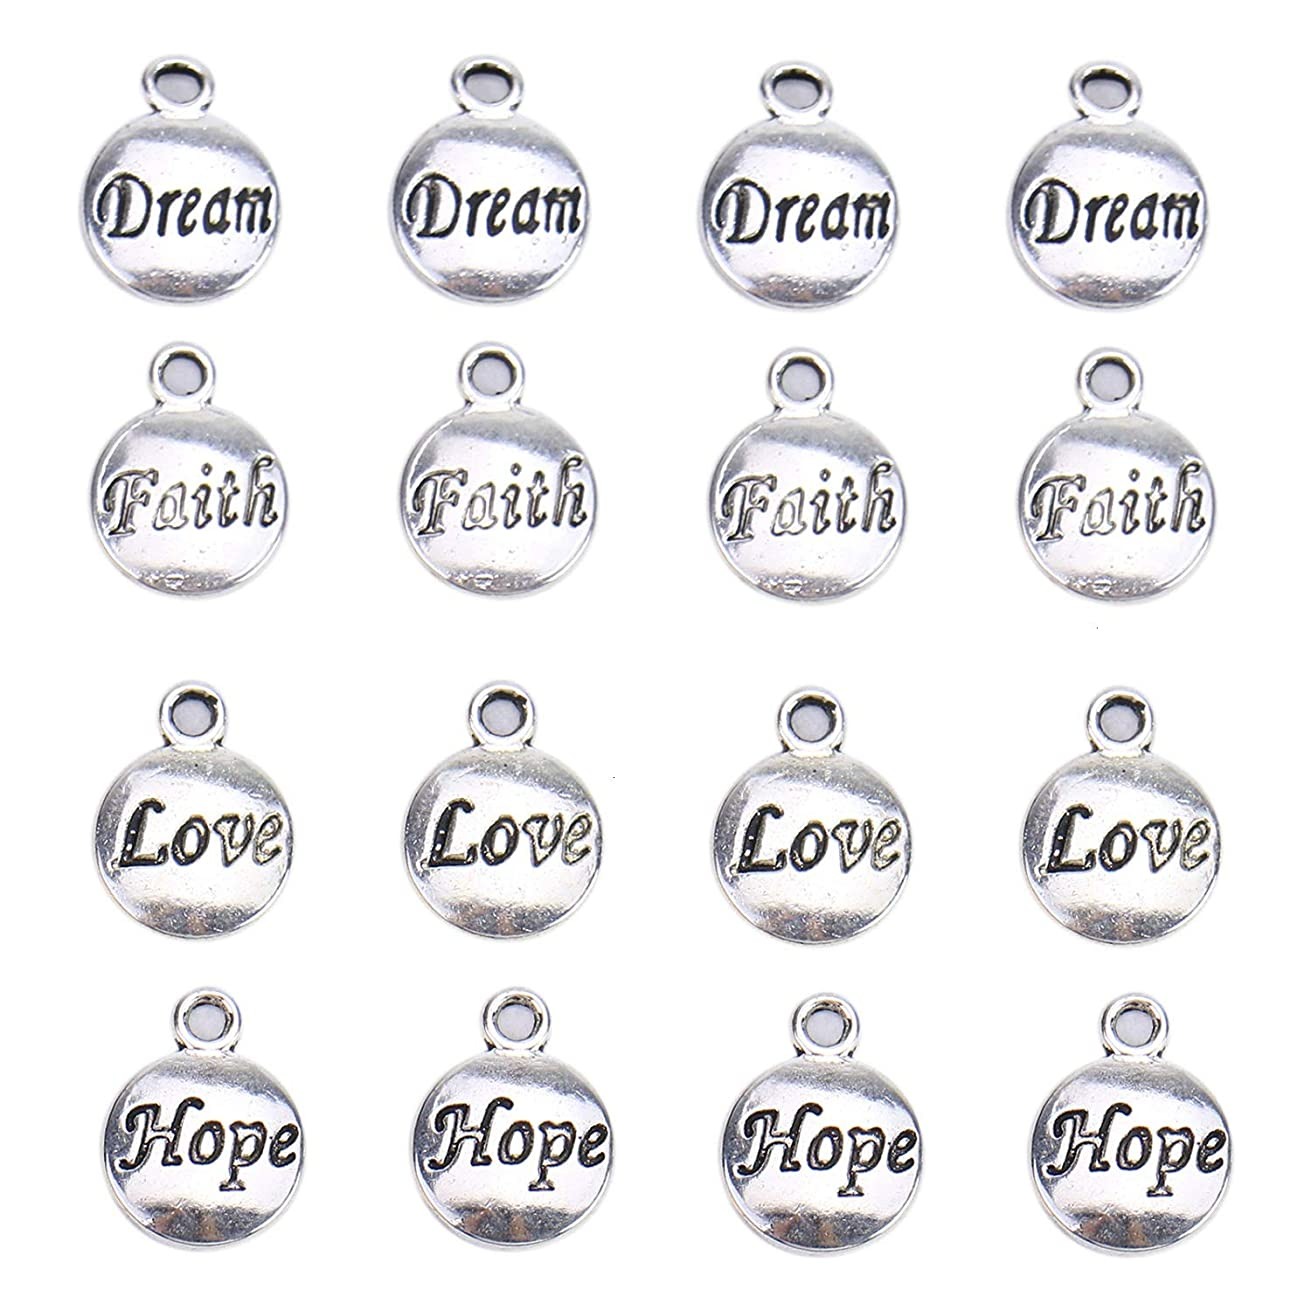 Monrocco 200 Pieces Inspiration Words Charms Craft Supplies Dream, Hope, Love, Faith Charms Pendants for Crafting, DIY Jewelry Making